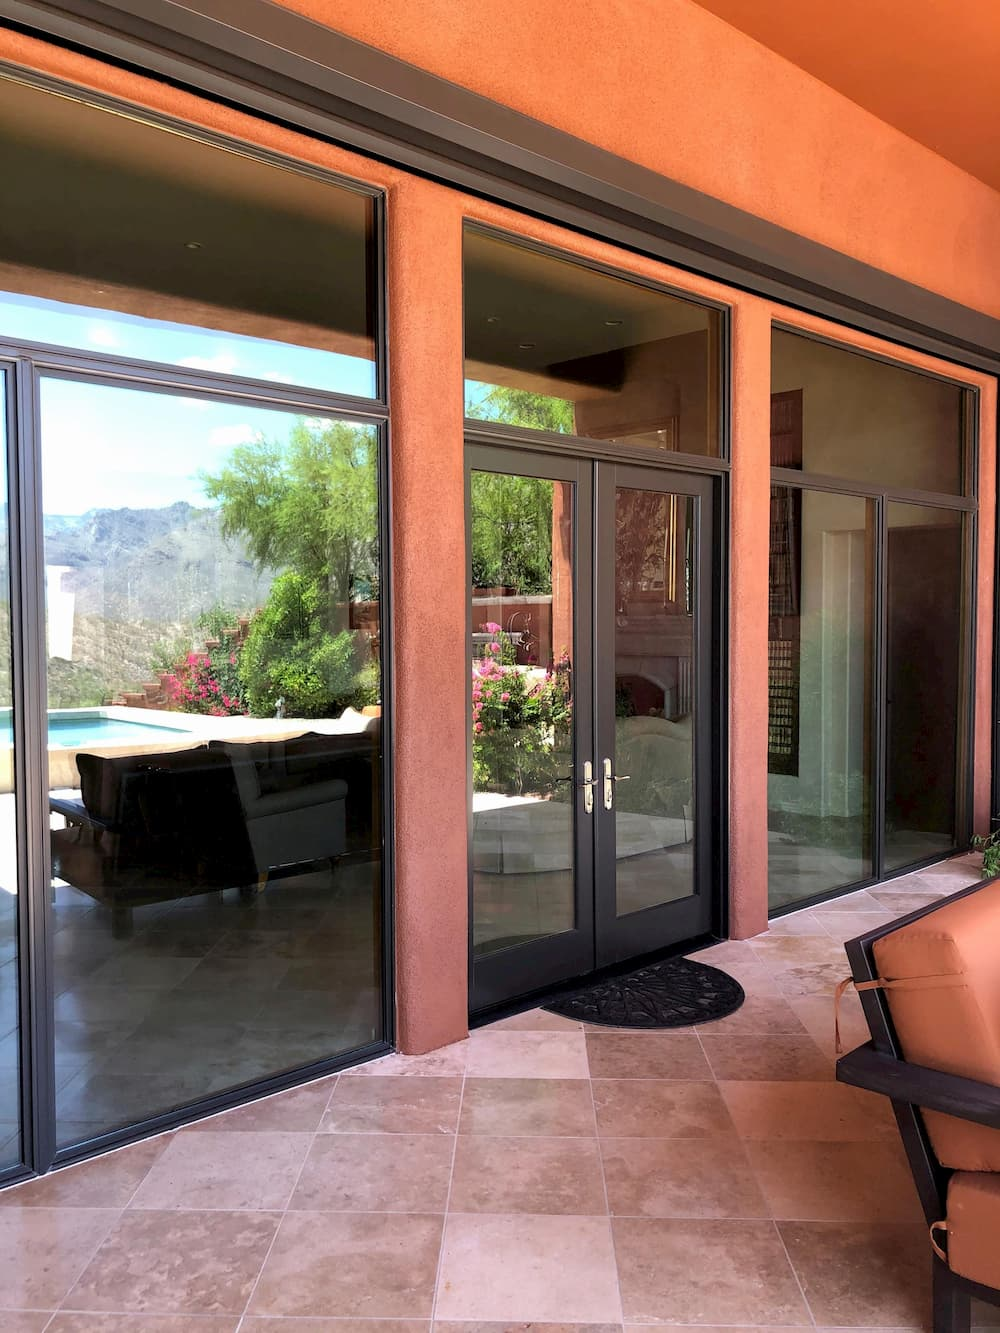 Exterior view of sliding glass doors in Tucson home family room